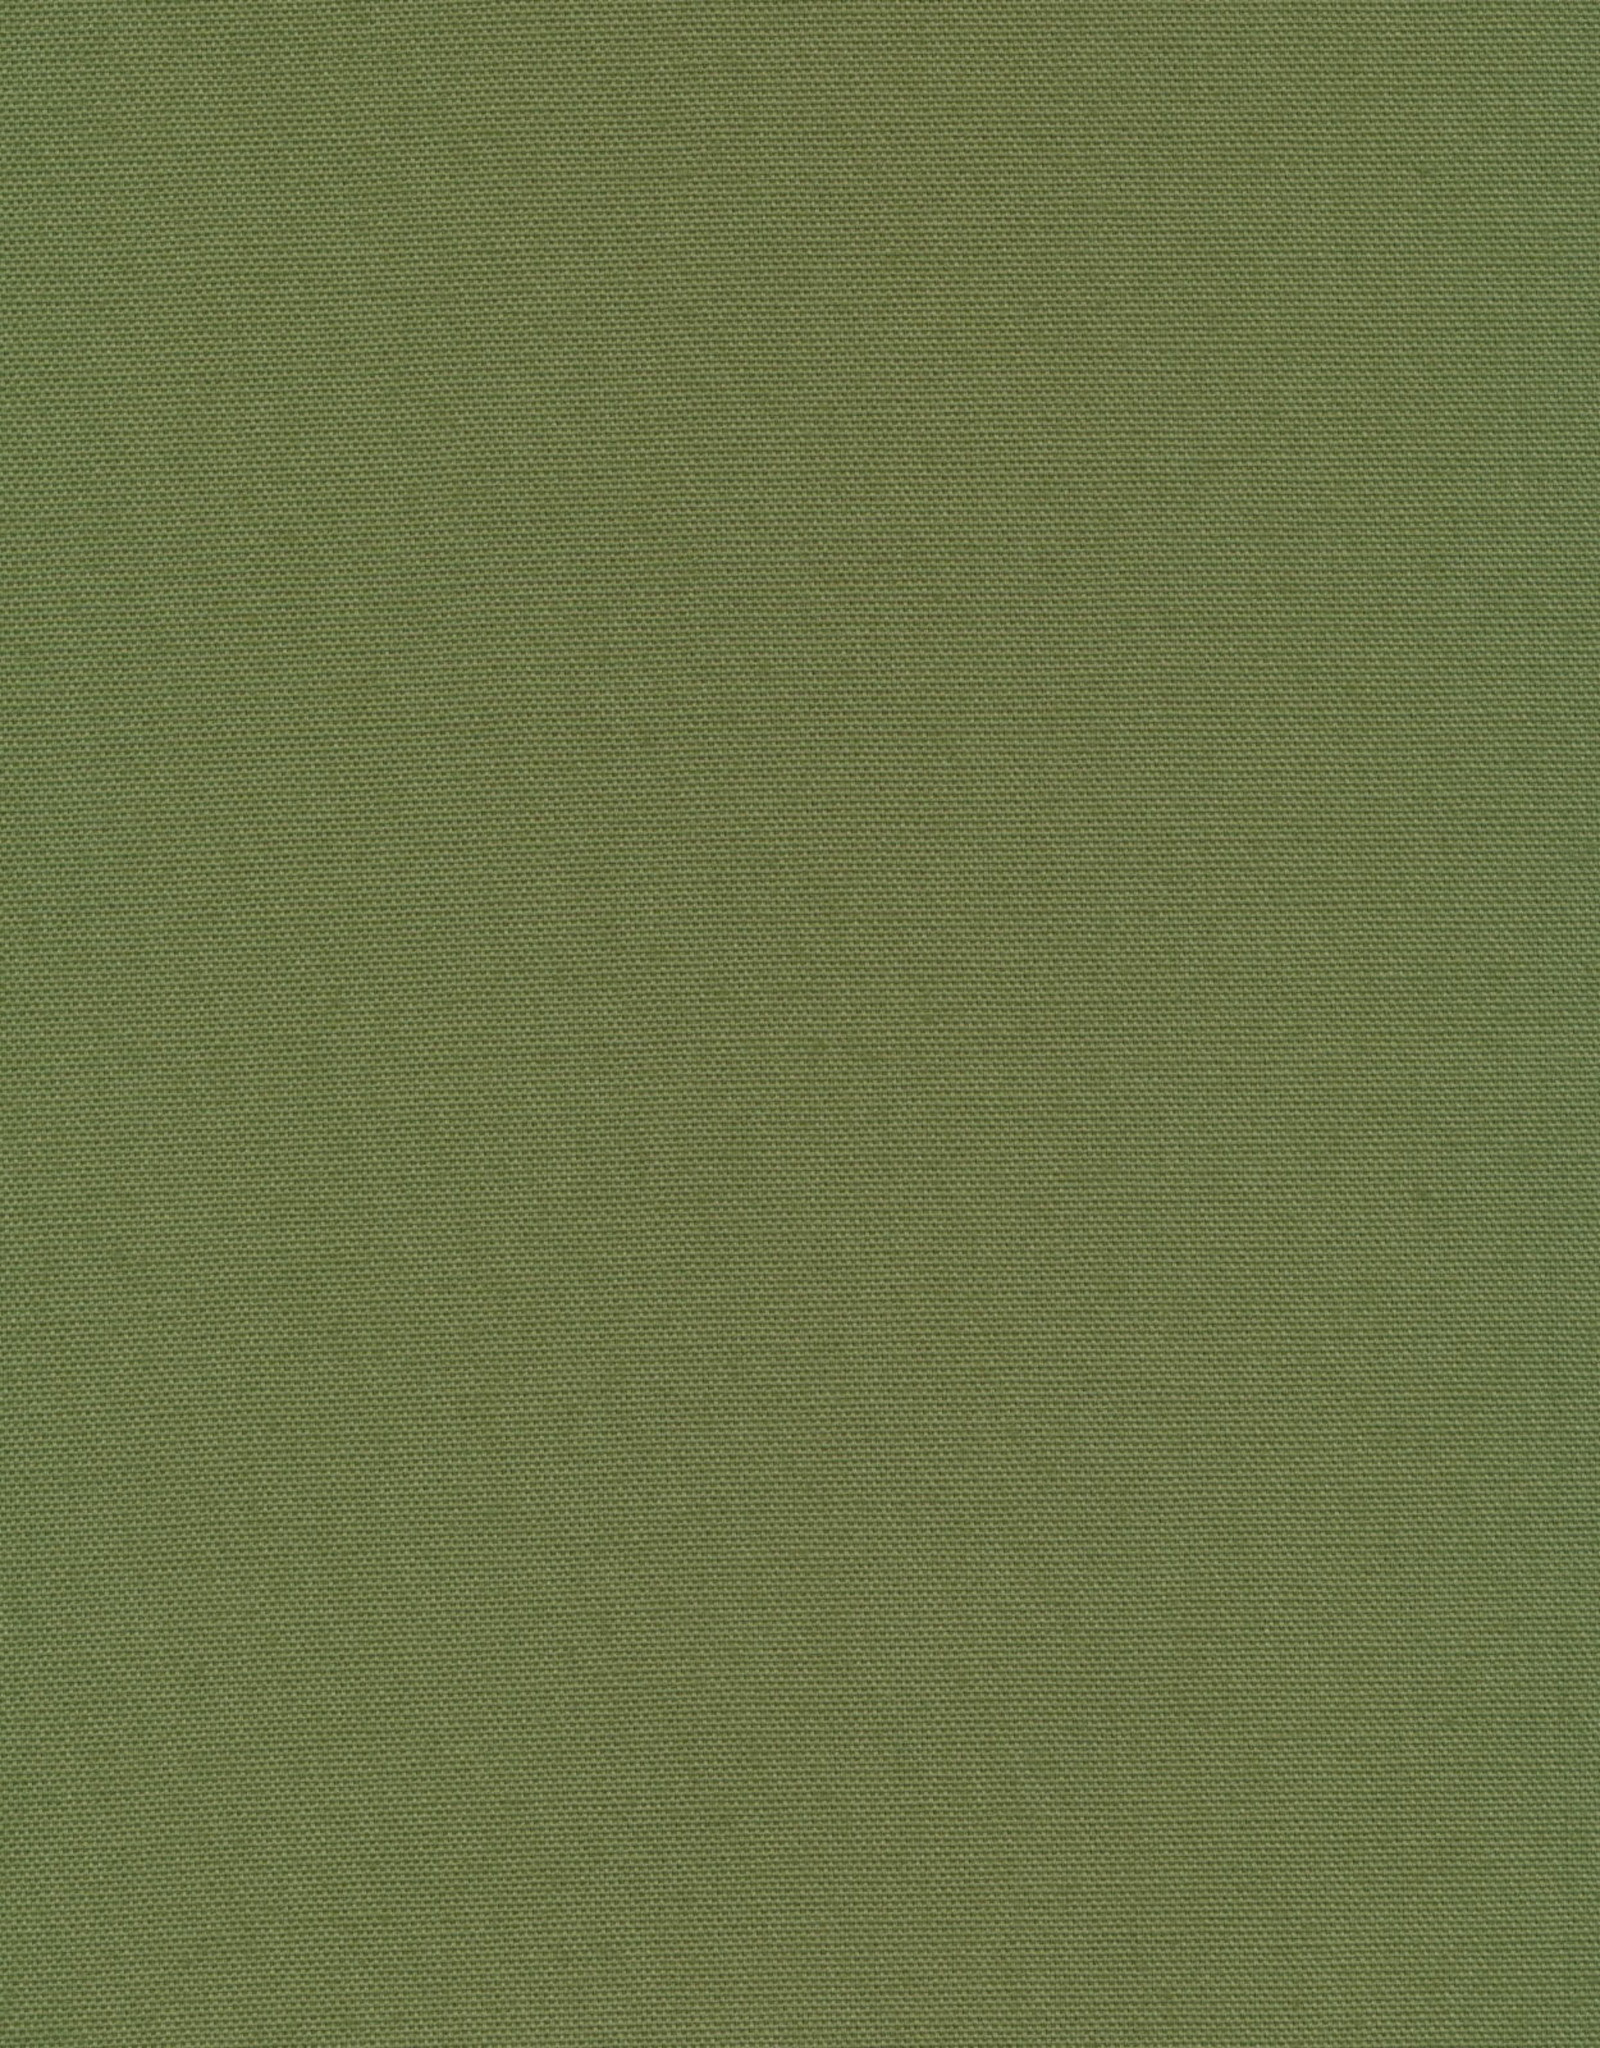 Cloud 9 Fabric Canvas Solid